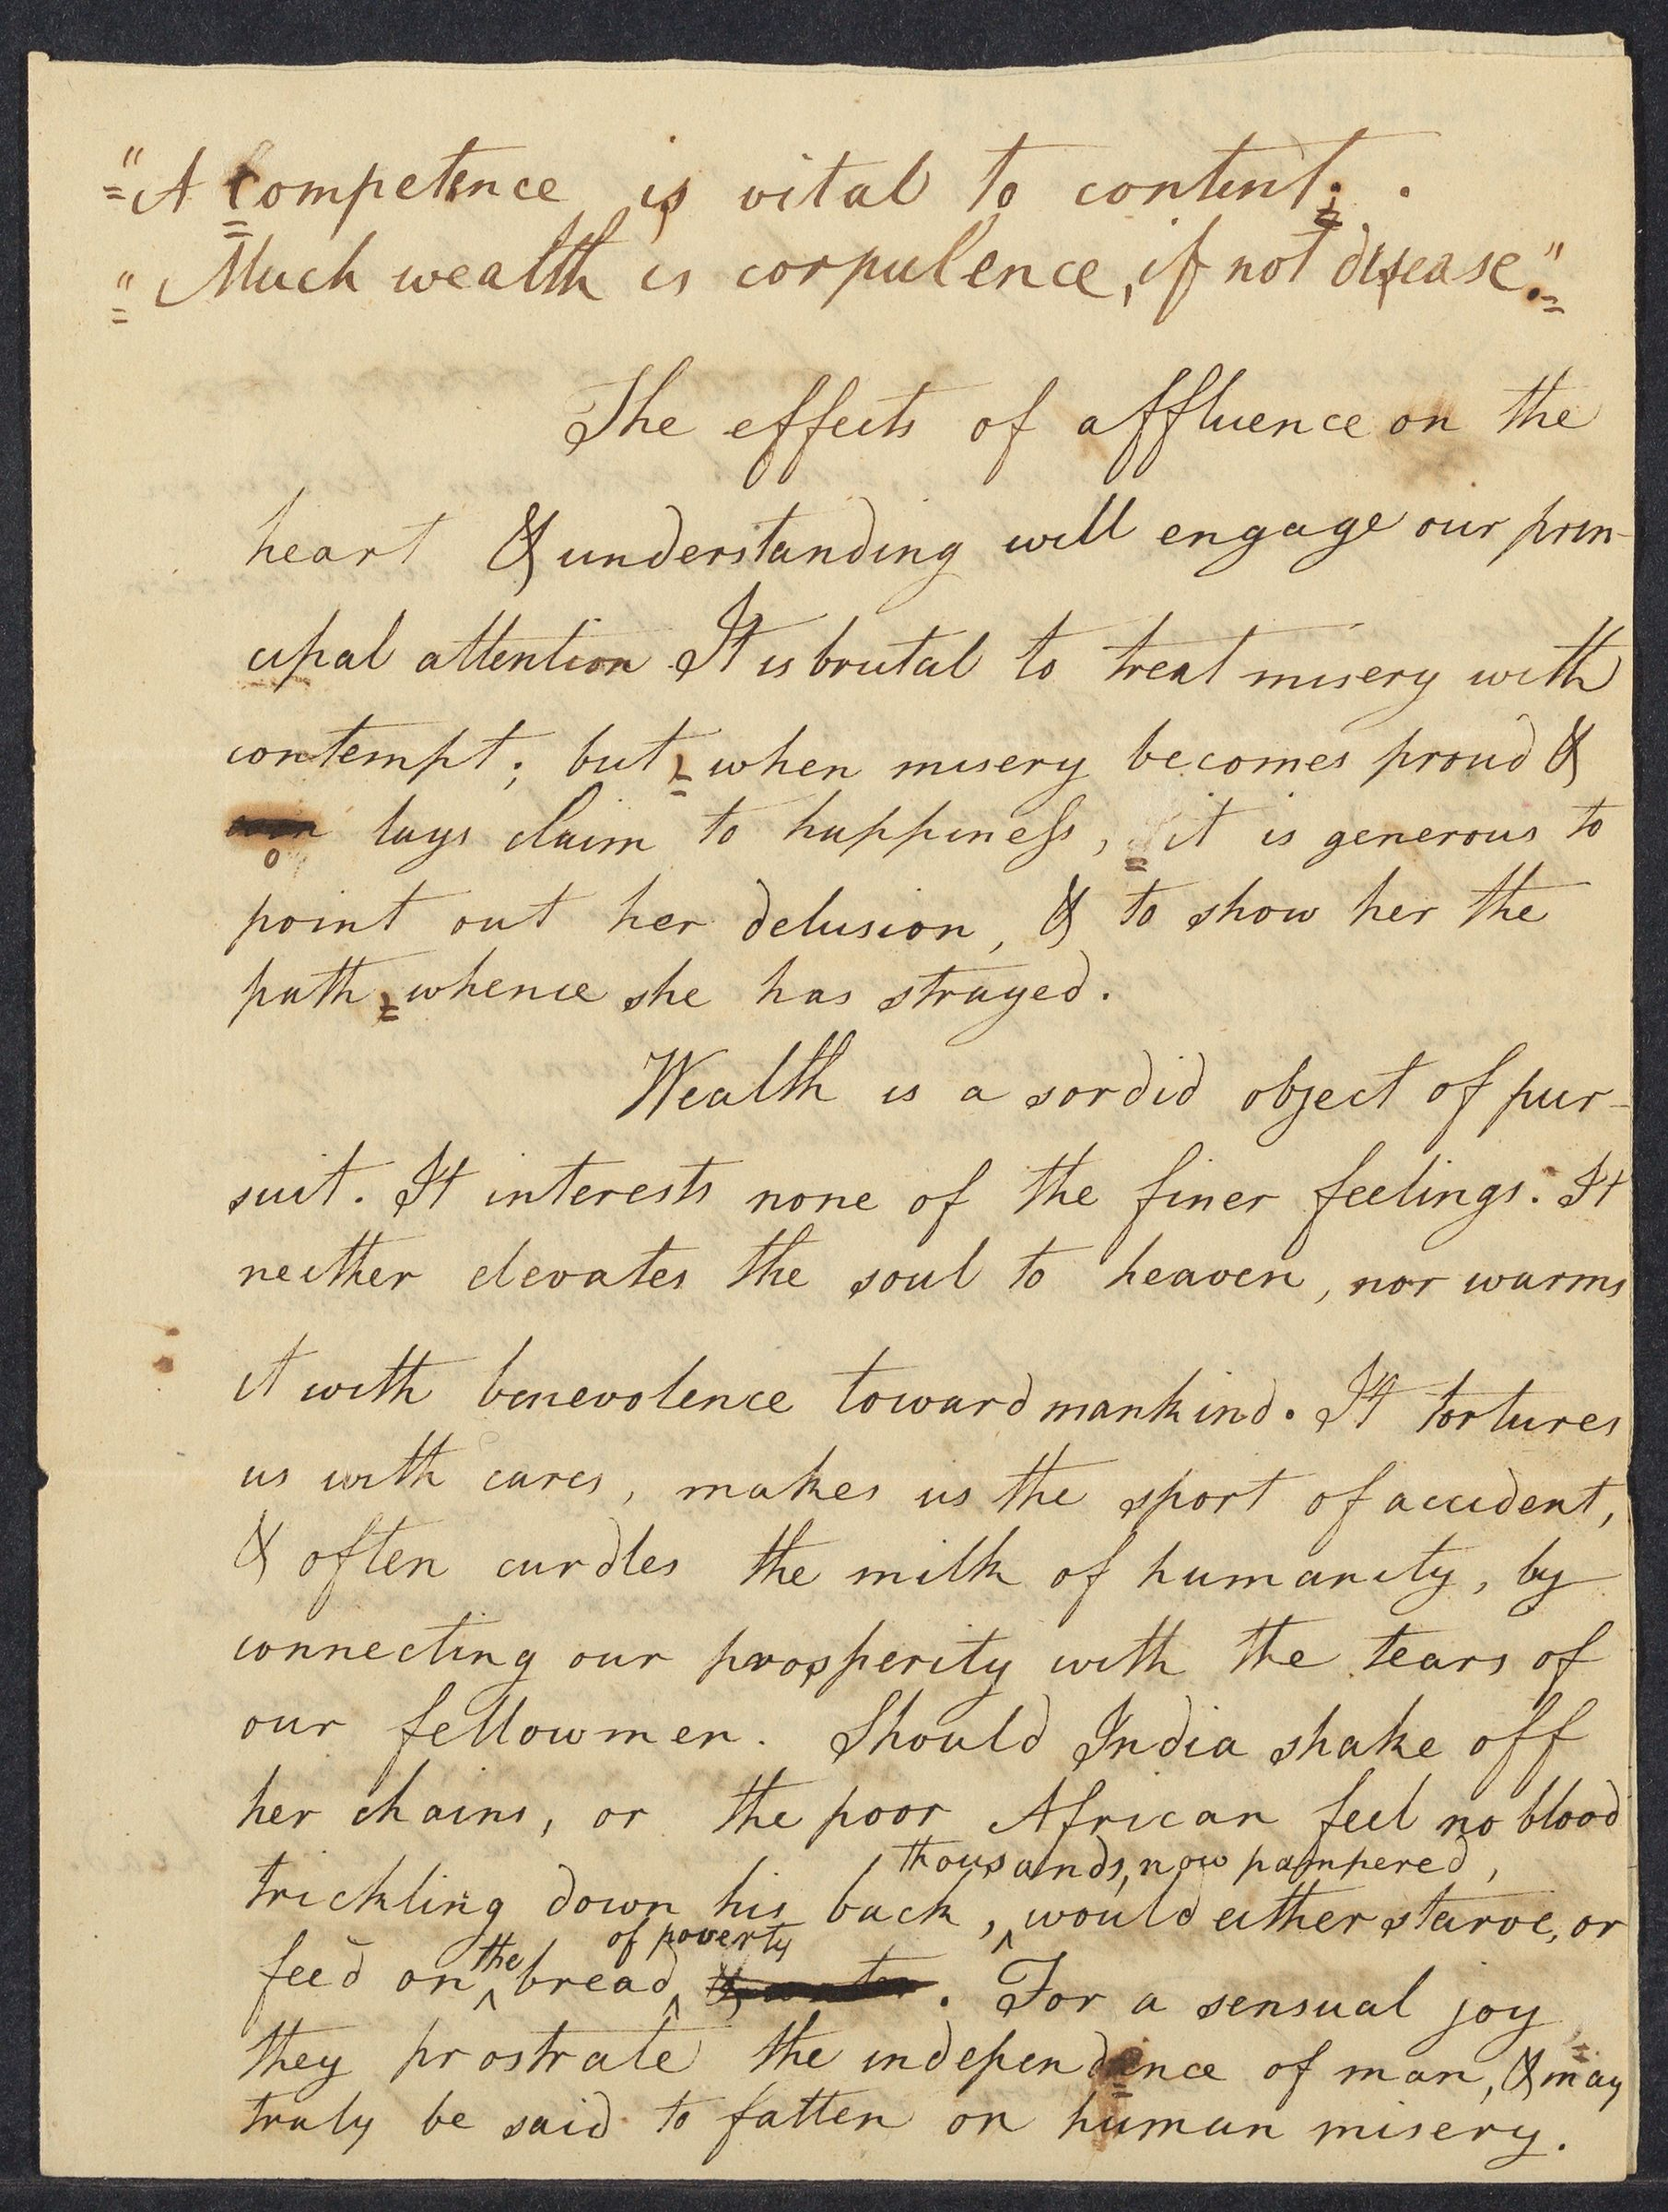 Student essay attributed to William Ellery Channing, 1797 June 5